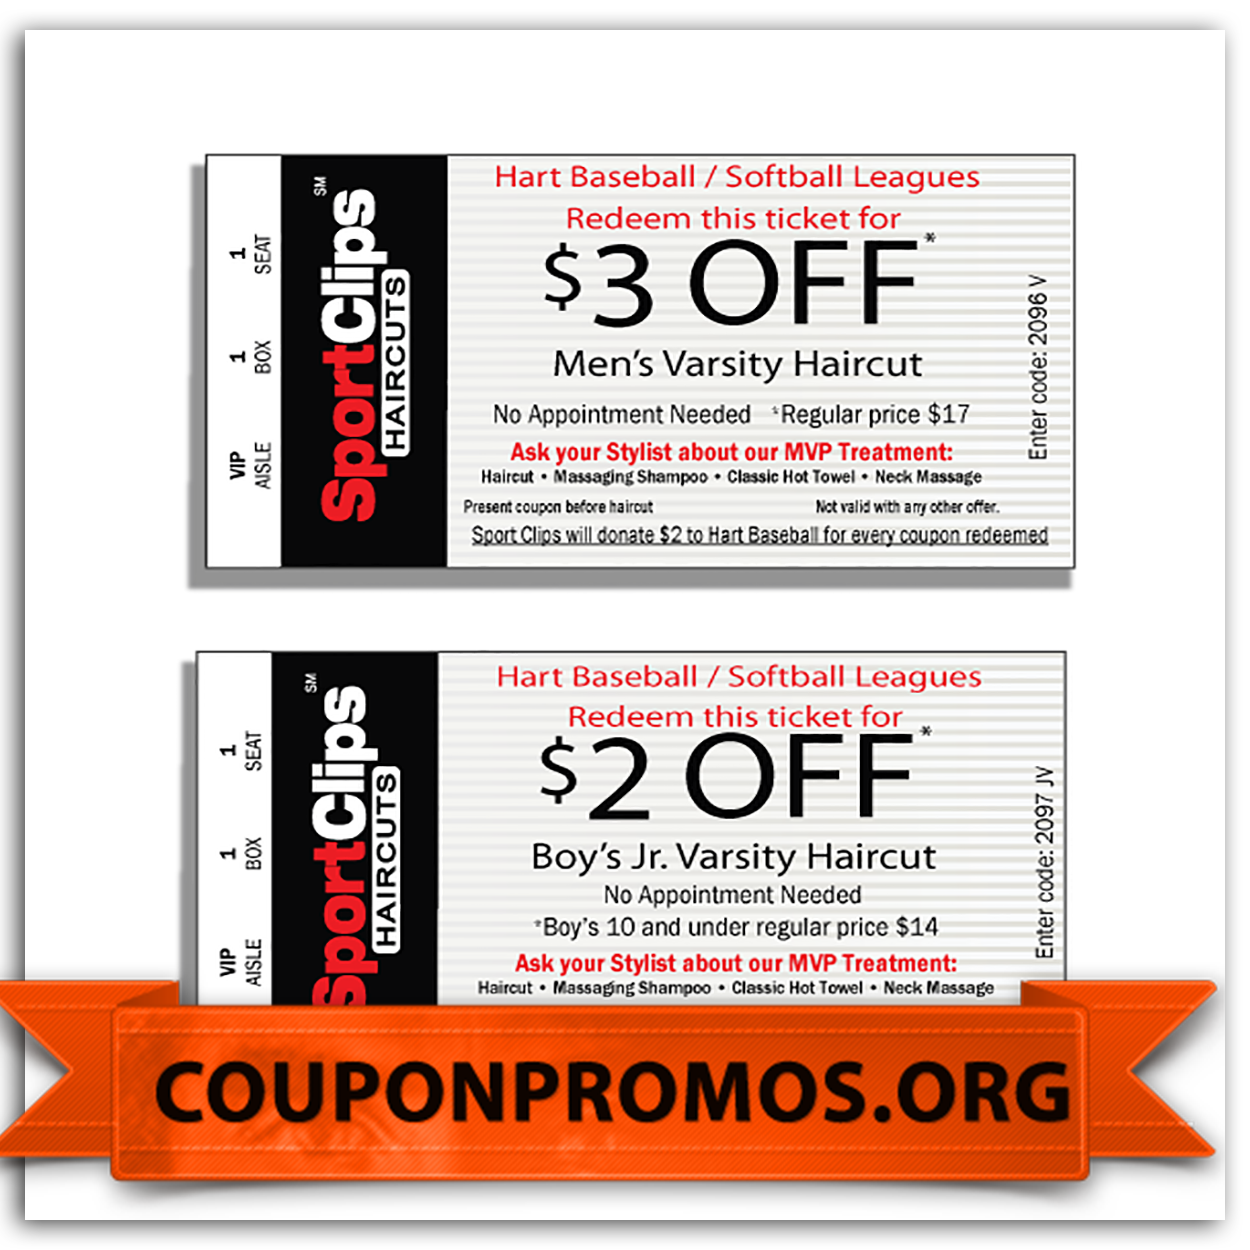 Sports Clips Coupon September 2017 (FREE HAIRCUT) Sports